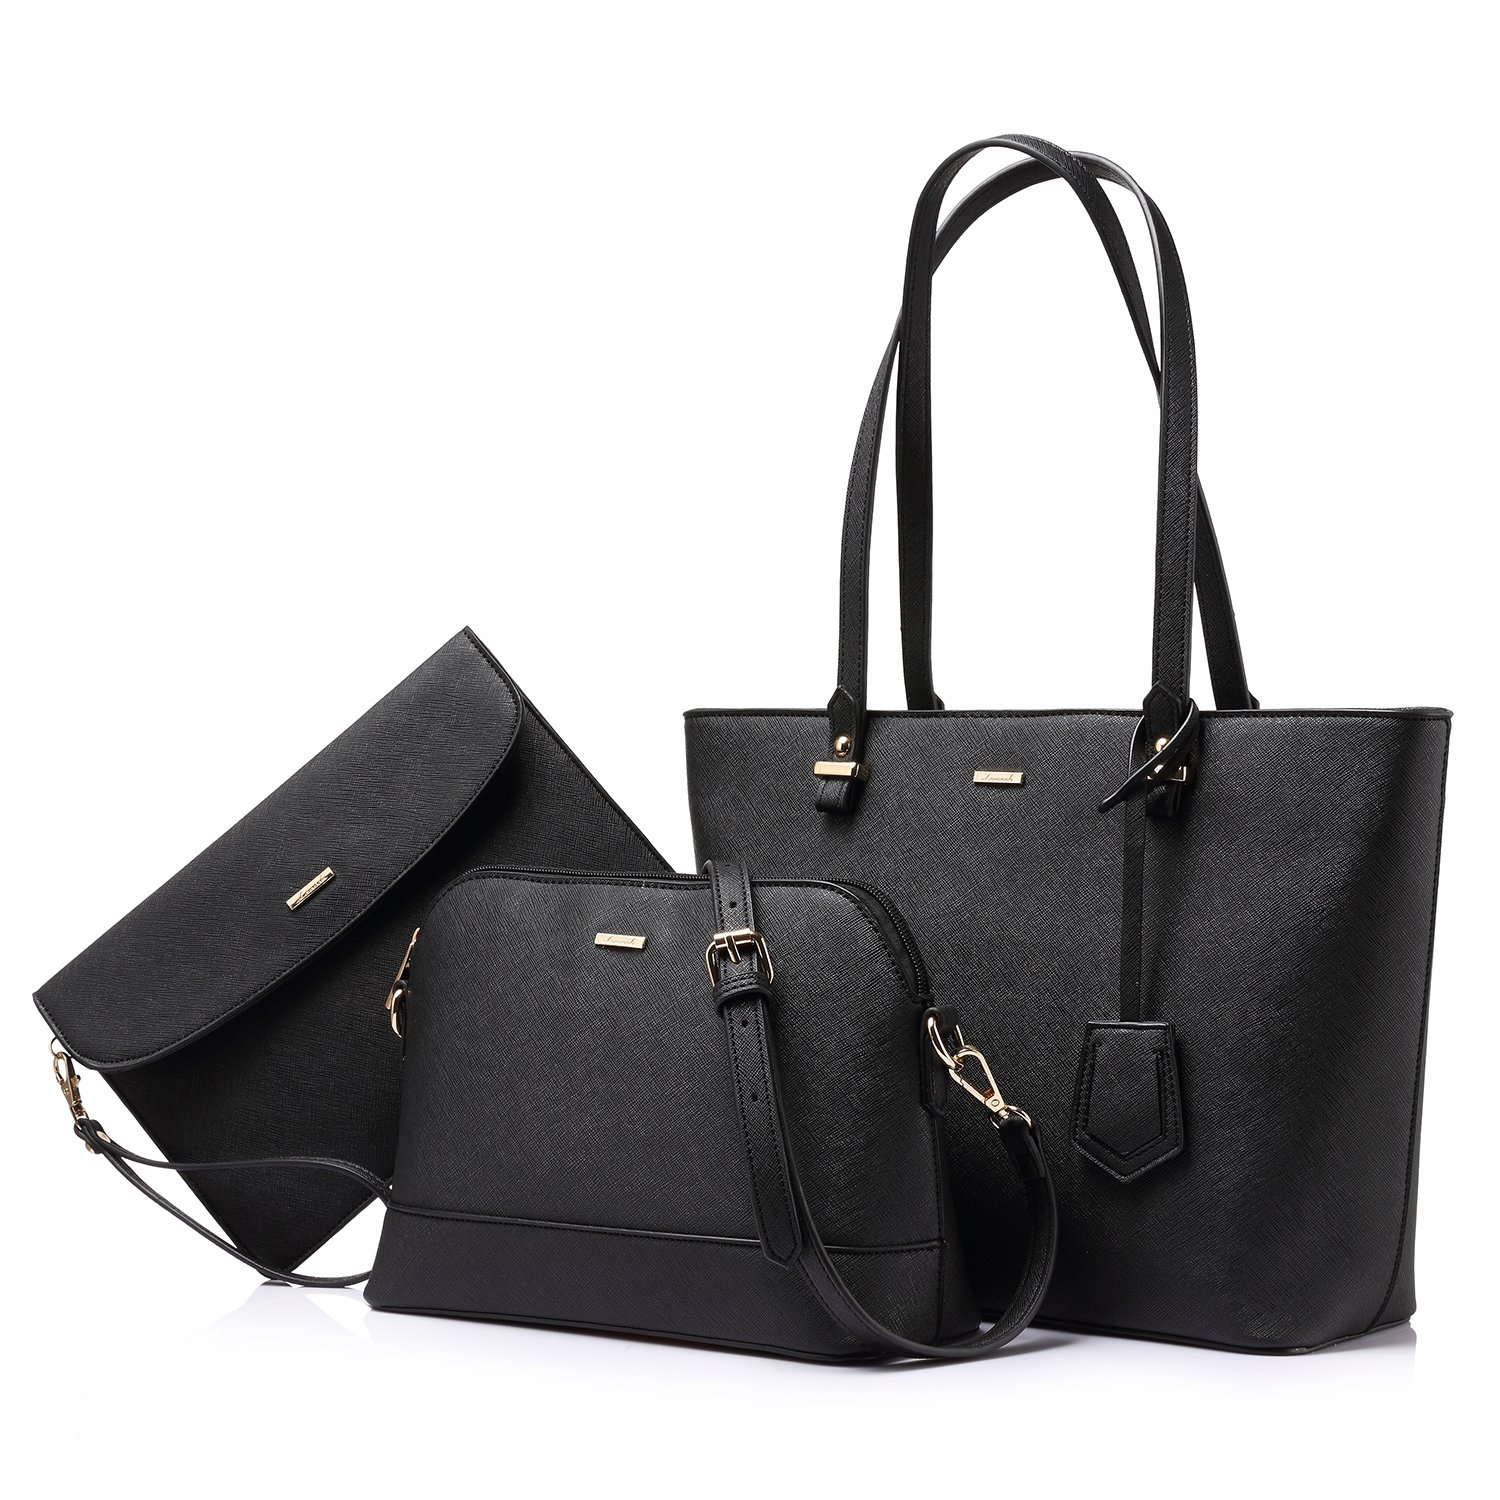 Handbags for Women Shoulder Bags Tote Satchel Hobo 3pcs Purse Set Black by LOVEVOOK